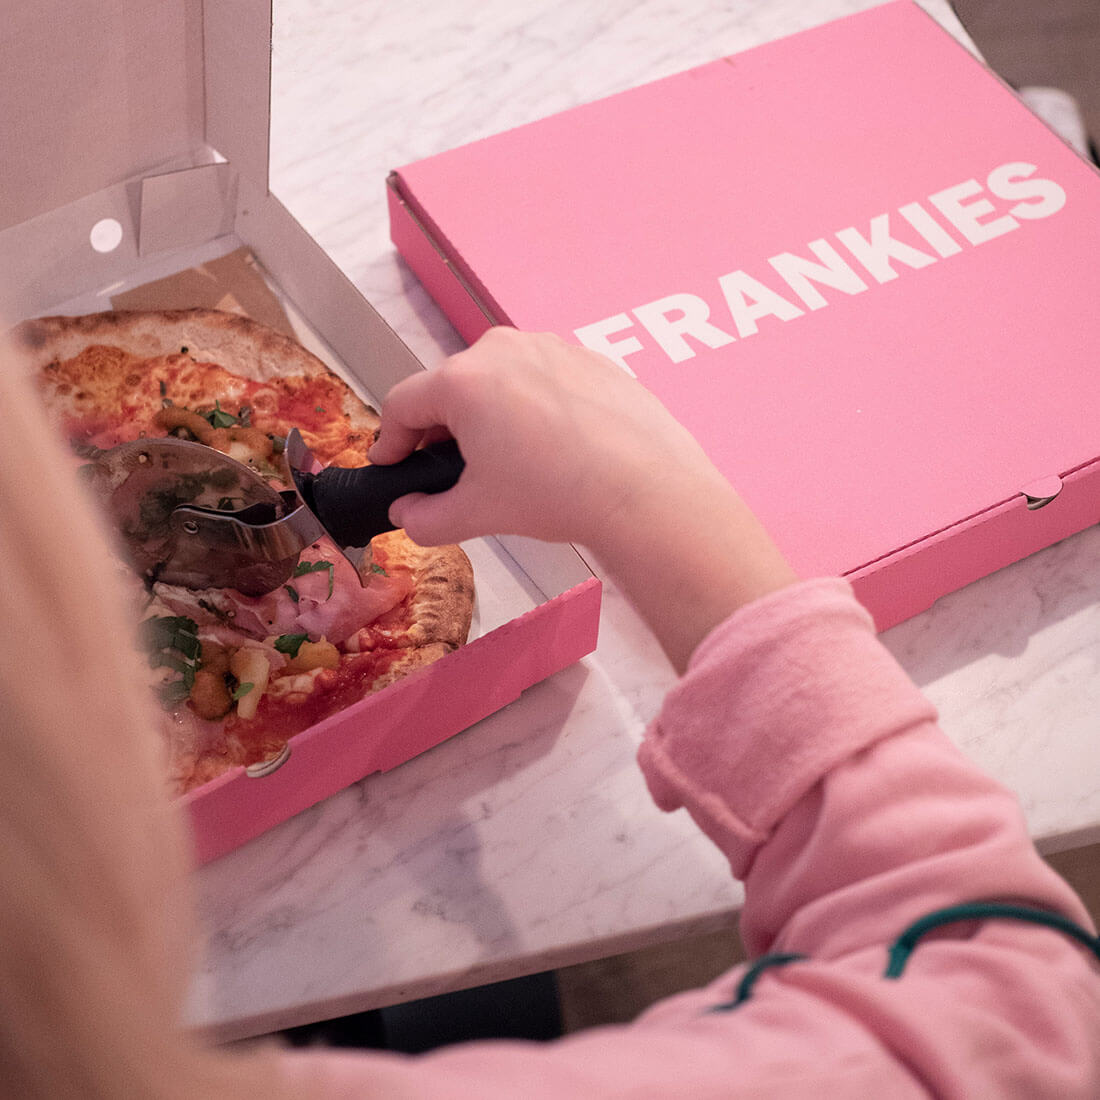 The pink pizza box is remembered by customers. A box that makes pizza taste better.